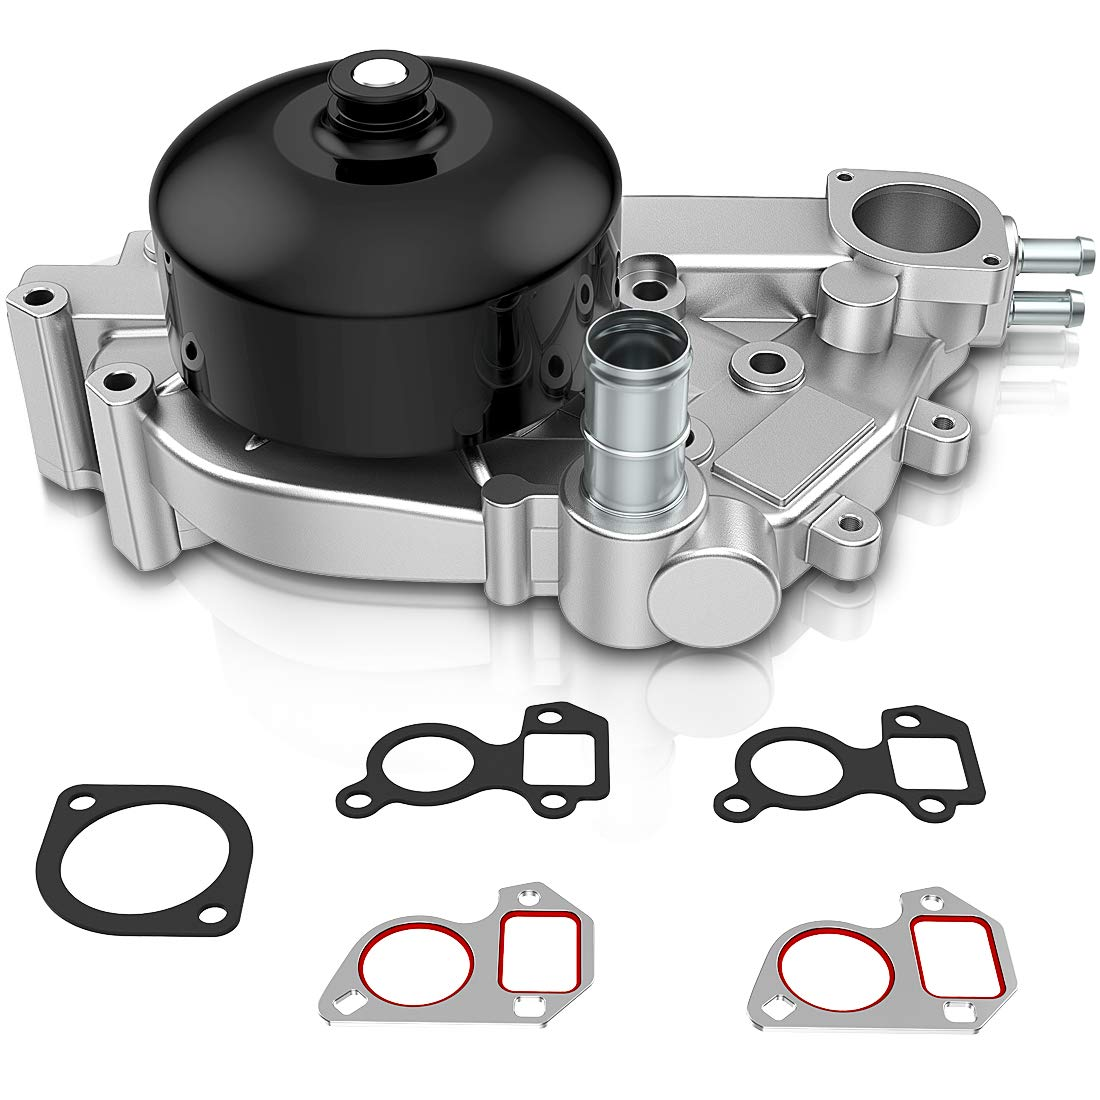 Water Pump with Gaskets For Chevy Small Block Gen III/IV (LS-based Engines) V8 5.7L/350 6.0L/364 19256263 AUTOSAVER88